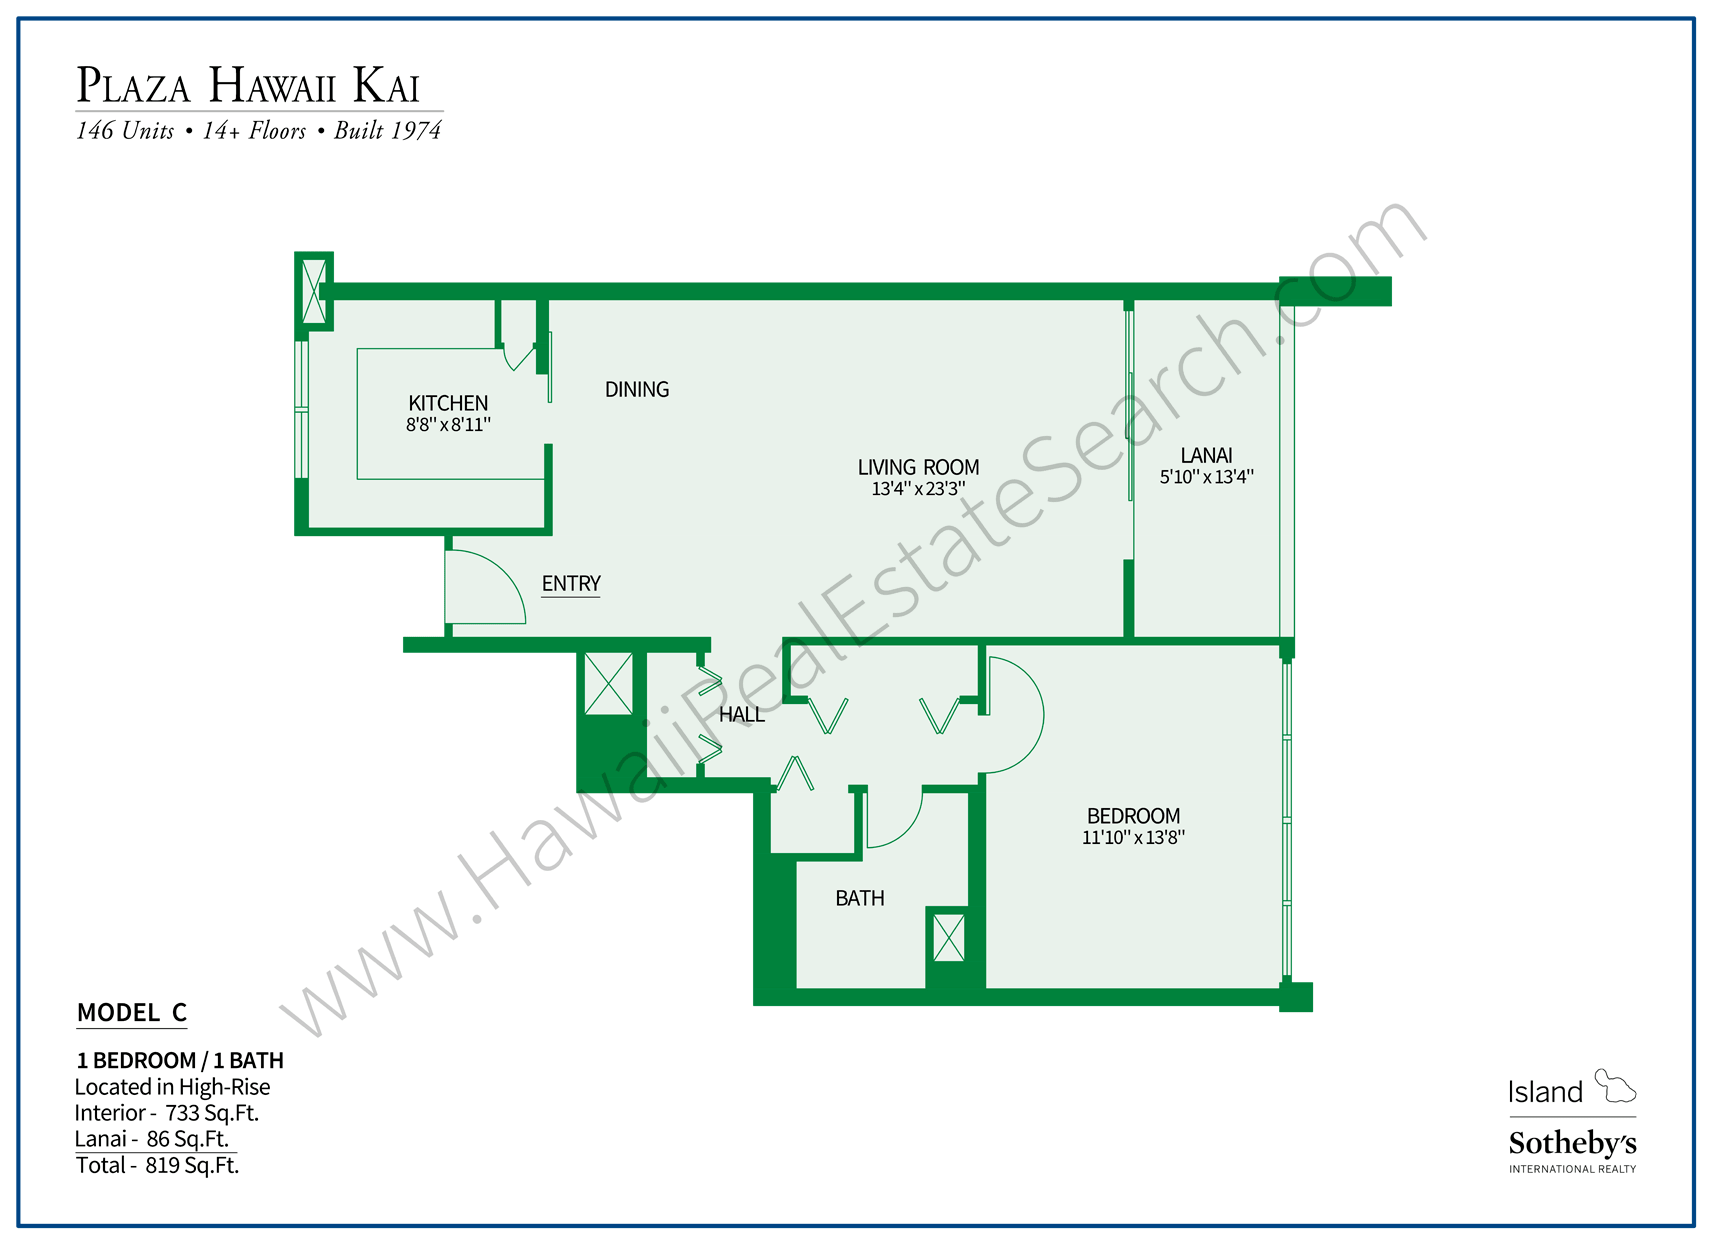 Plaza Hawaii Kai Floor Plan C